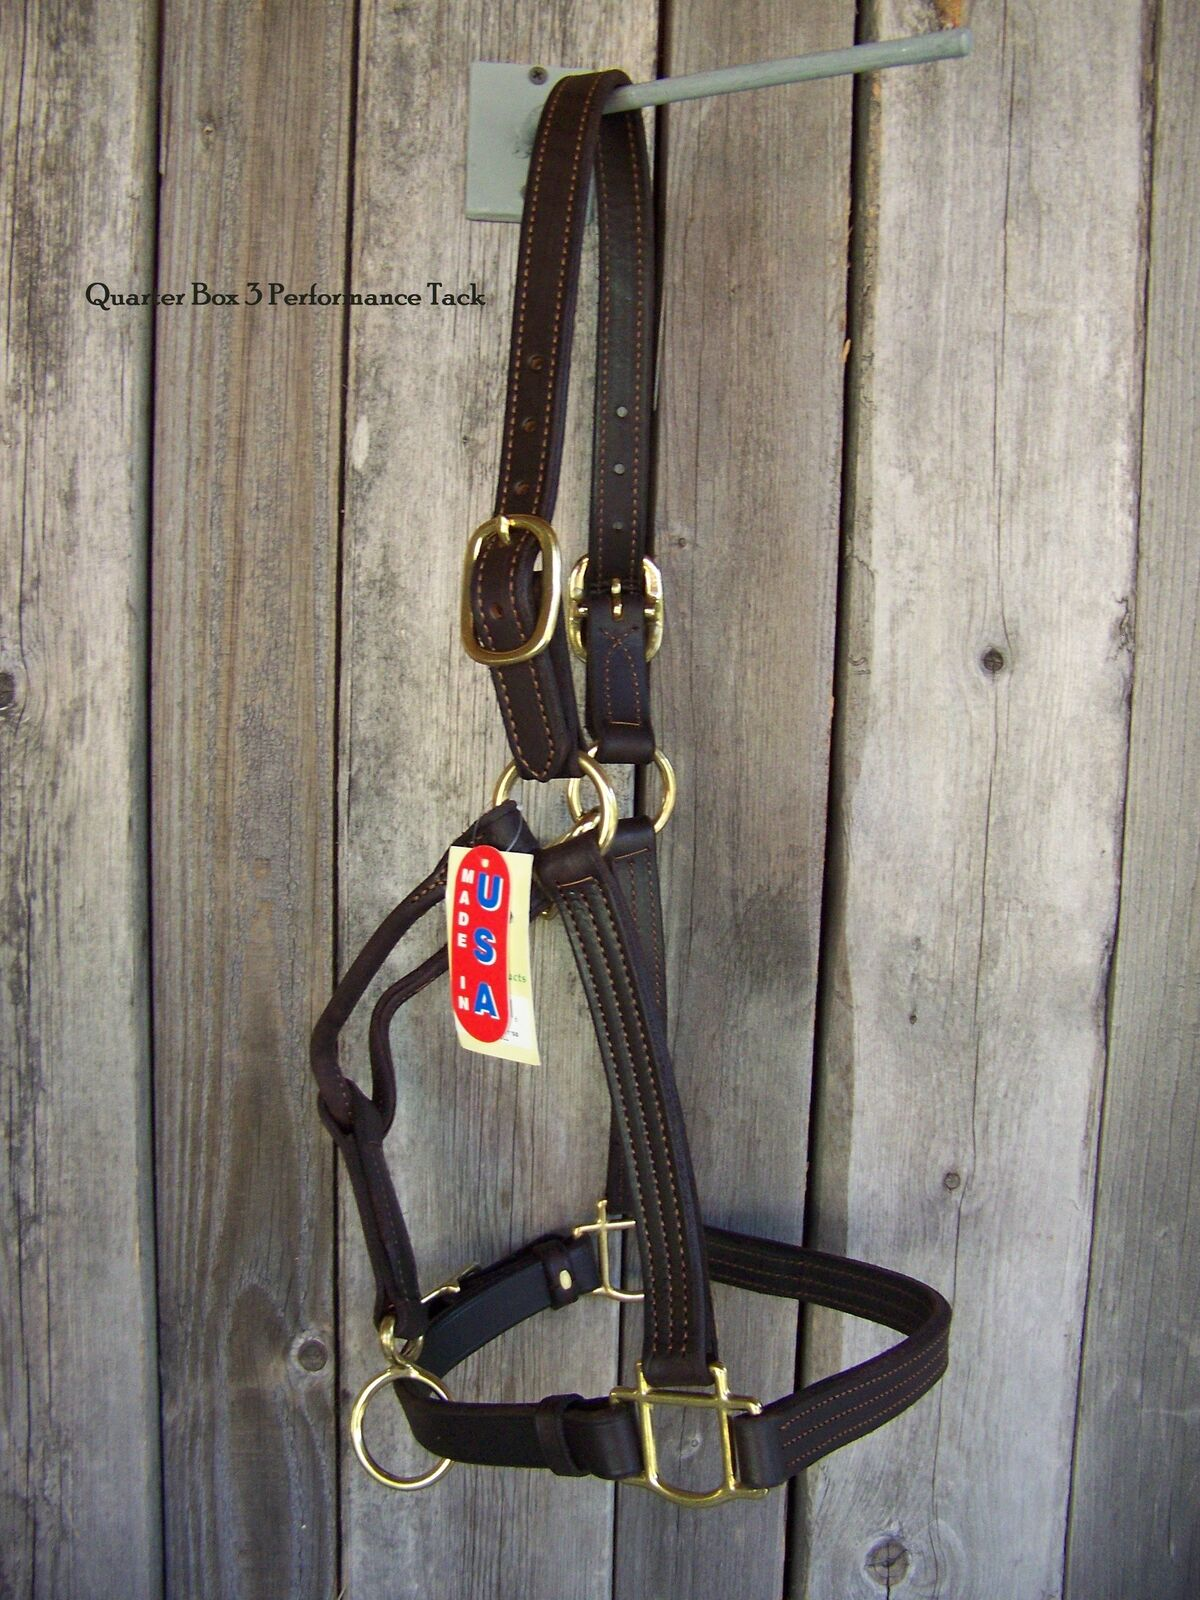 Halter - Leather Stable, Triple Stitched (Horse Size)